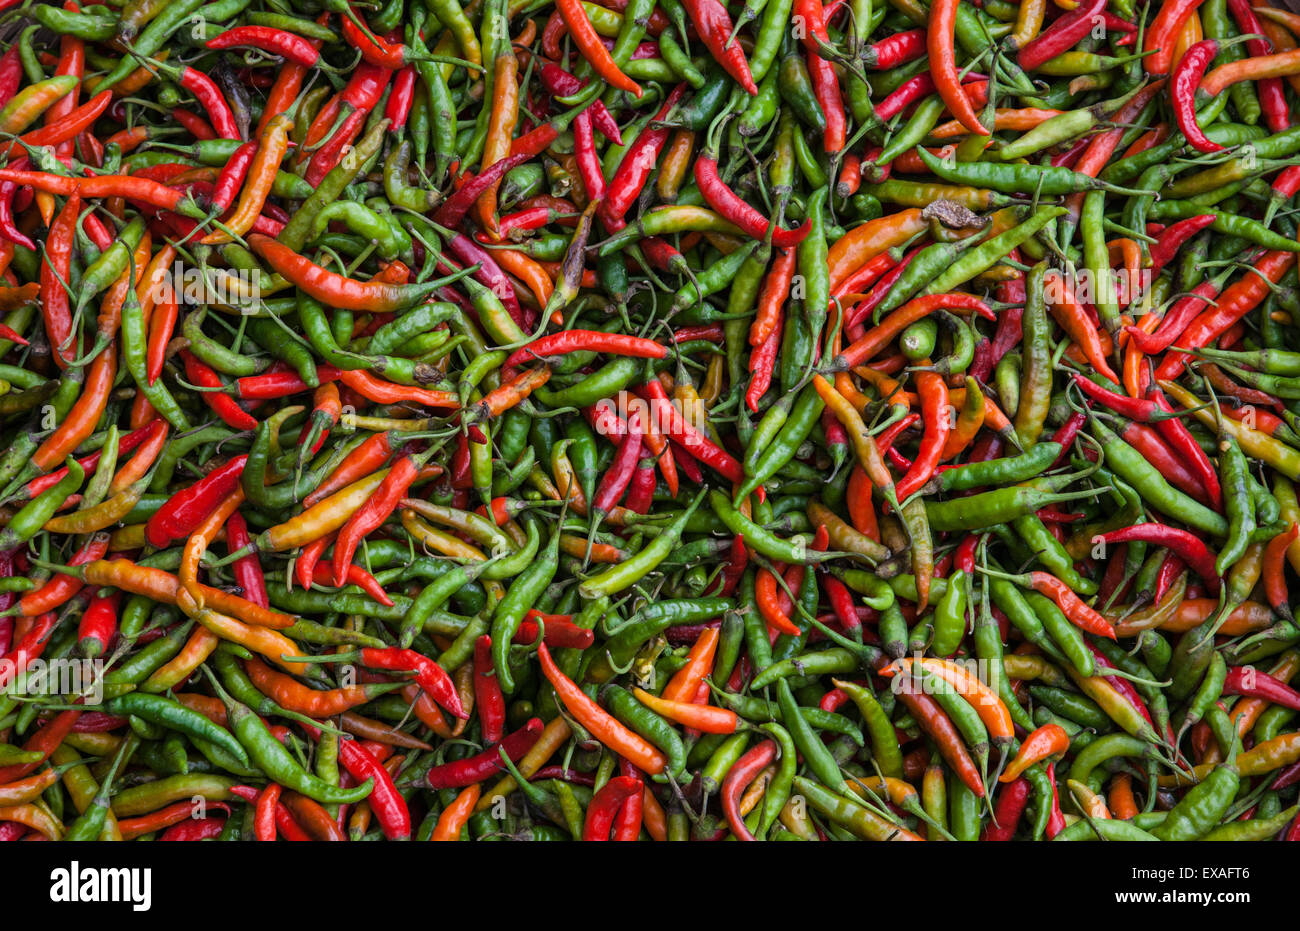 Seafood chili are exposed in the streets of Darjeeling, this drug assim with spices is produced in India and exported, - Stock Image